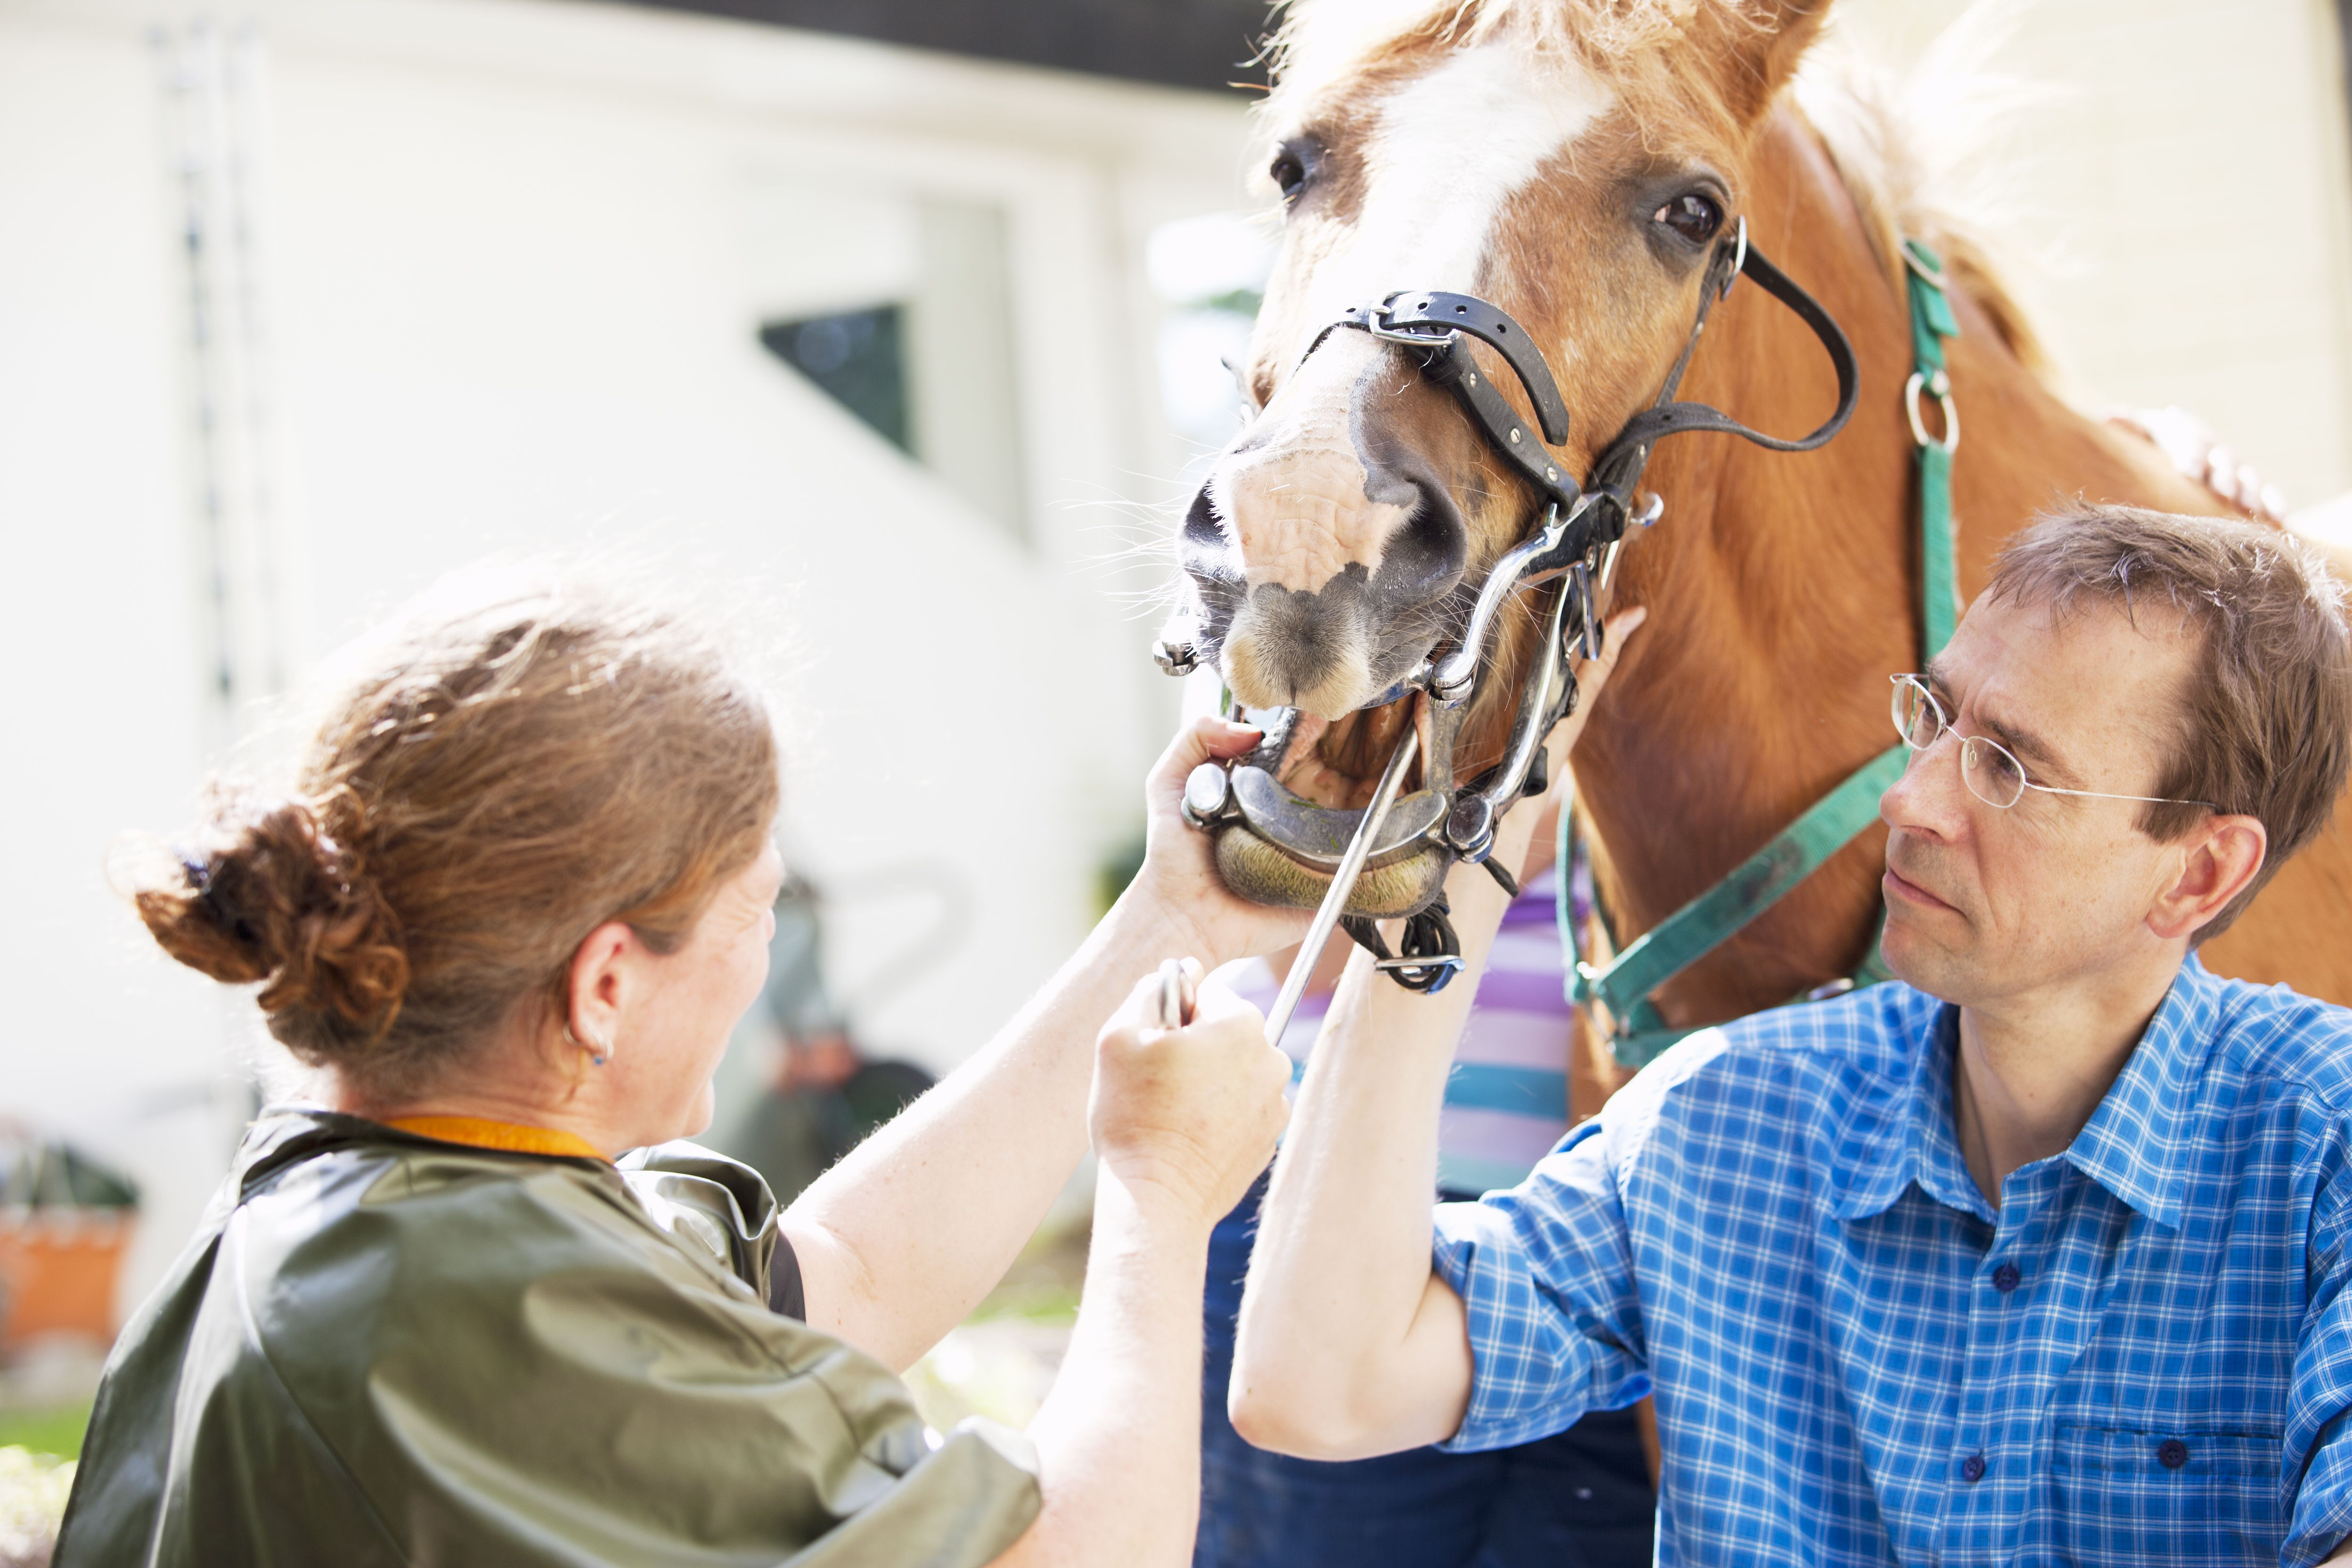 Horse dentists